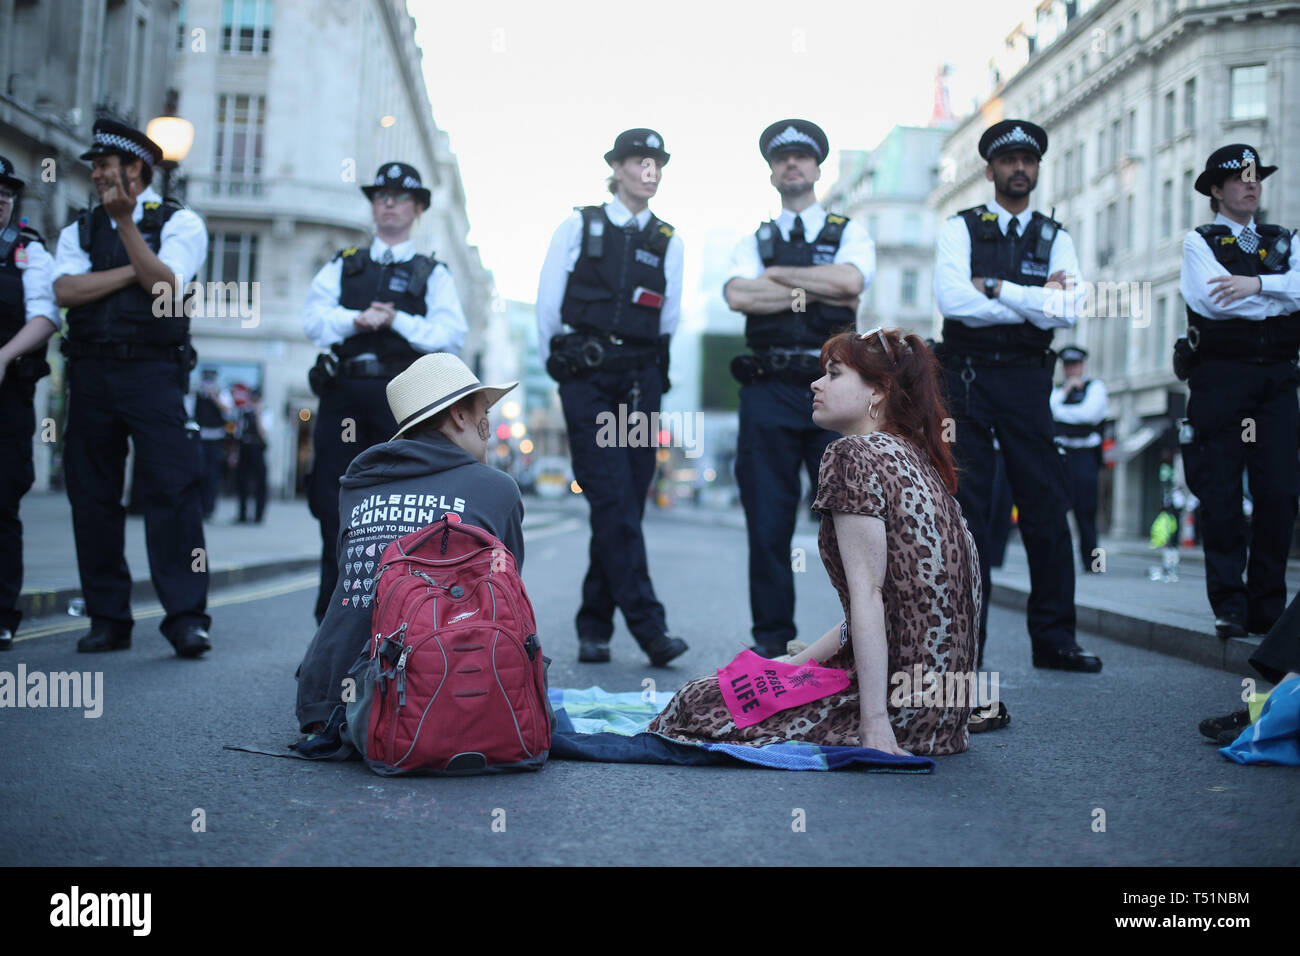 Police with Extinction Rebellion demonstrators at Oxford Circus in London. Stock Photo